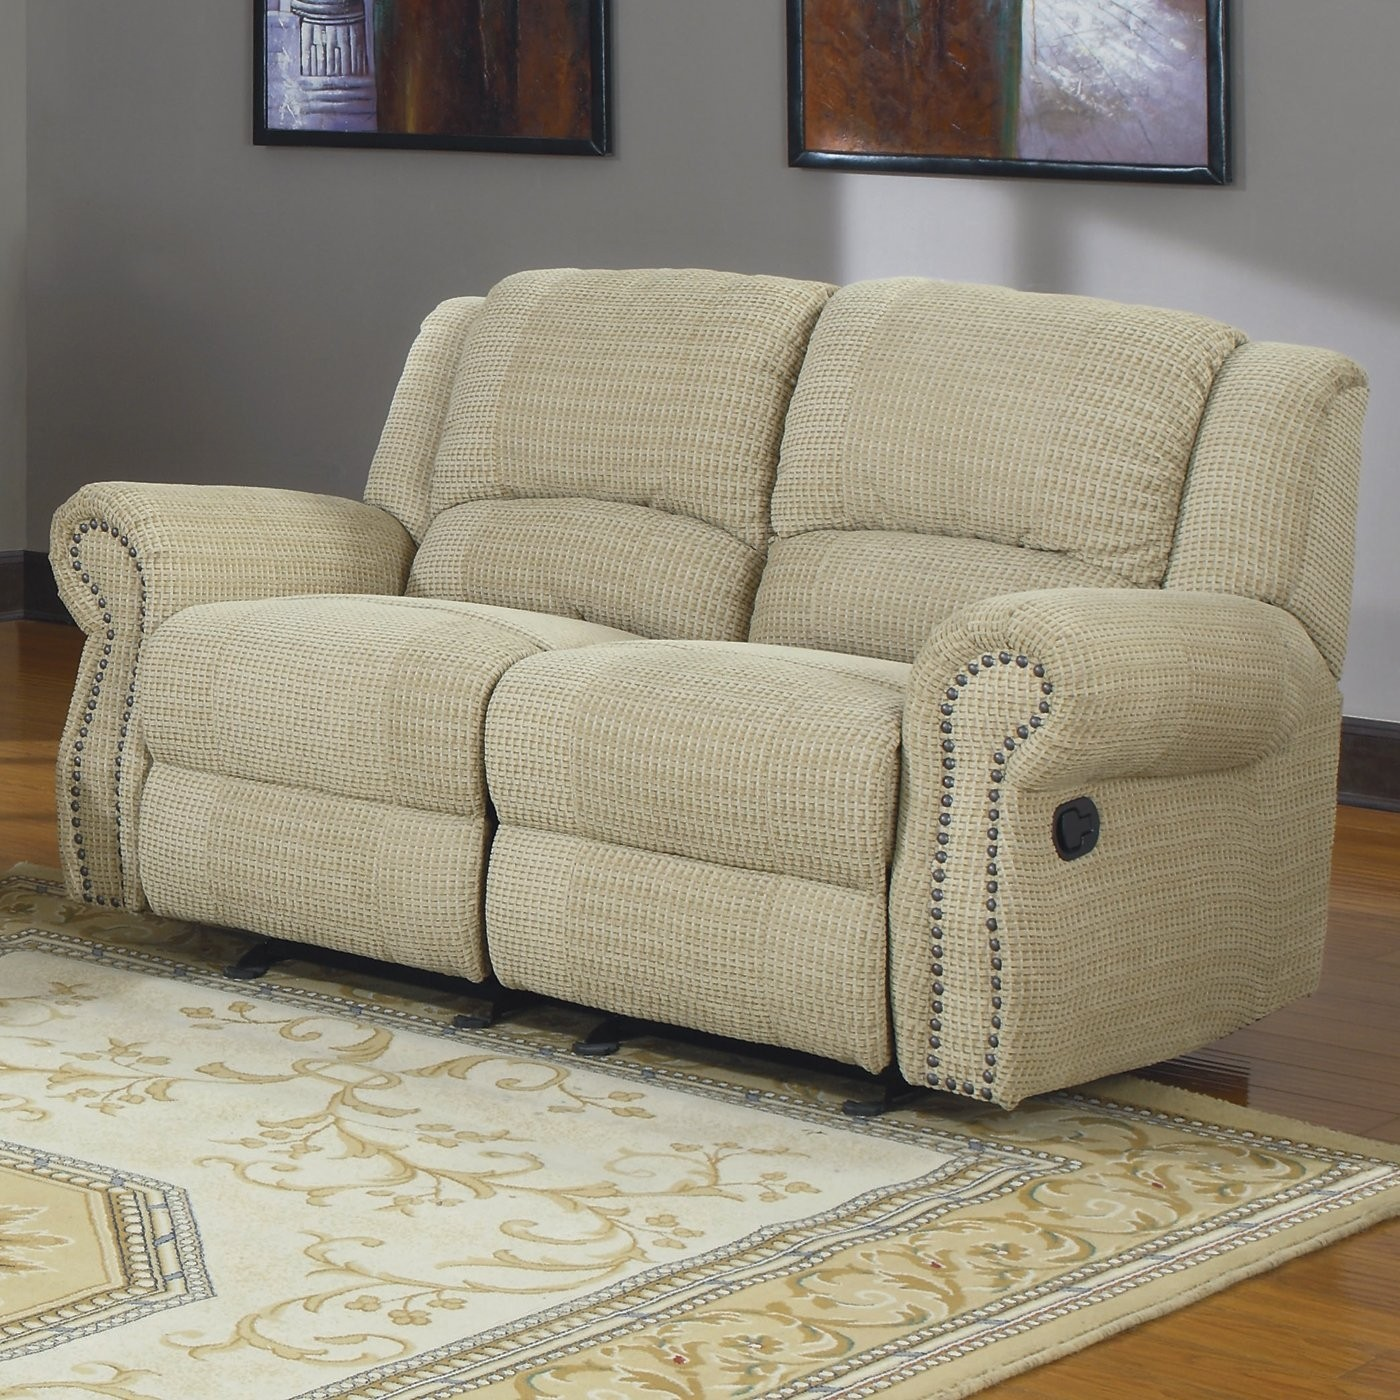 Woodbridge home designs quinn double rocker reclining loveseat